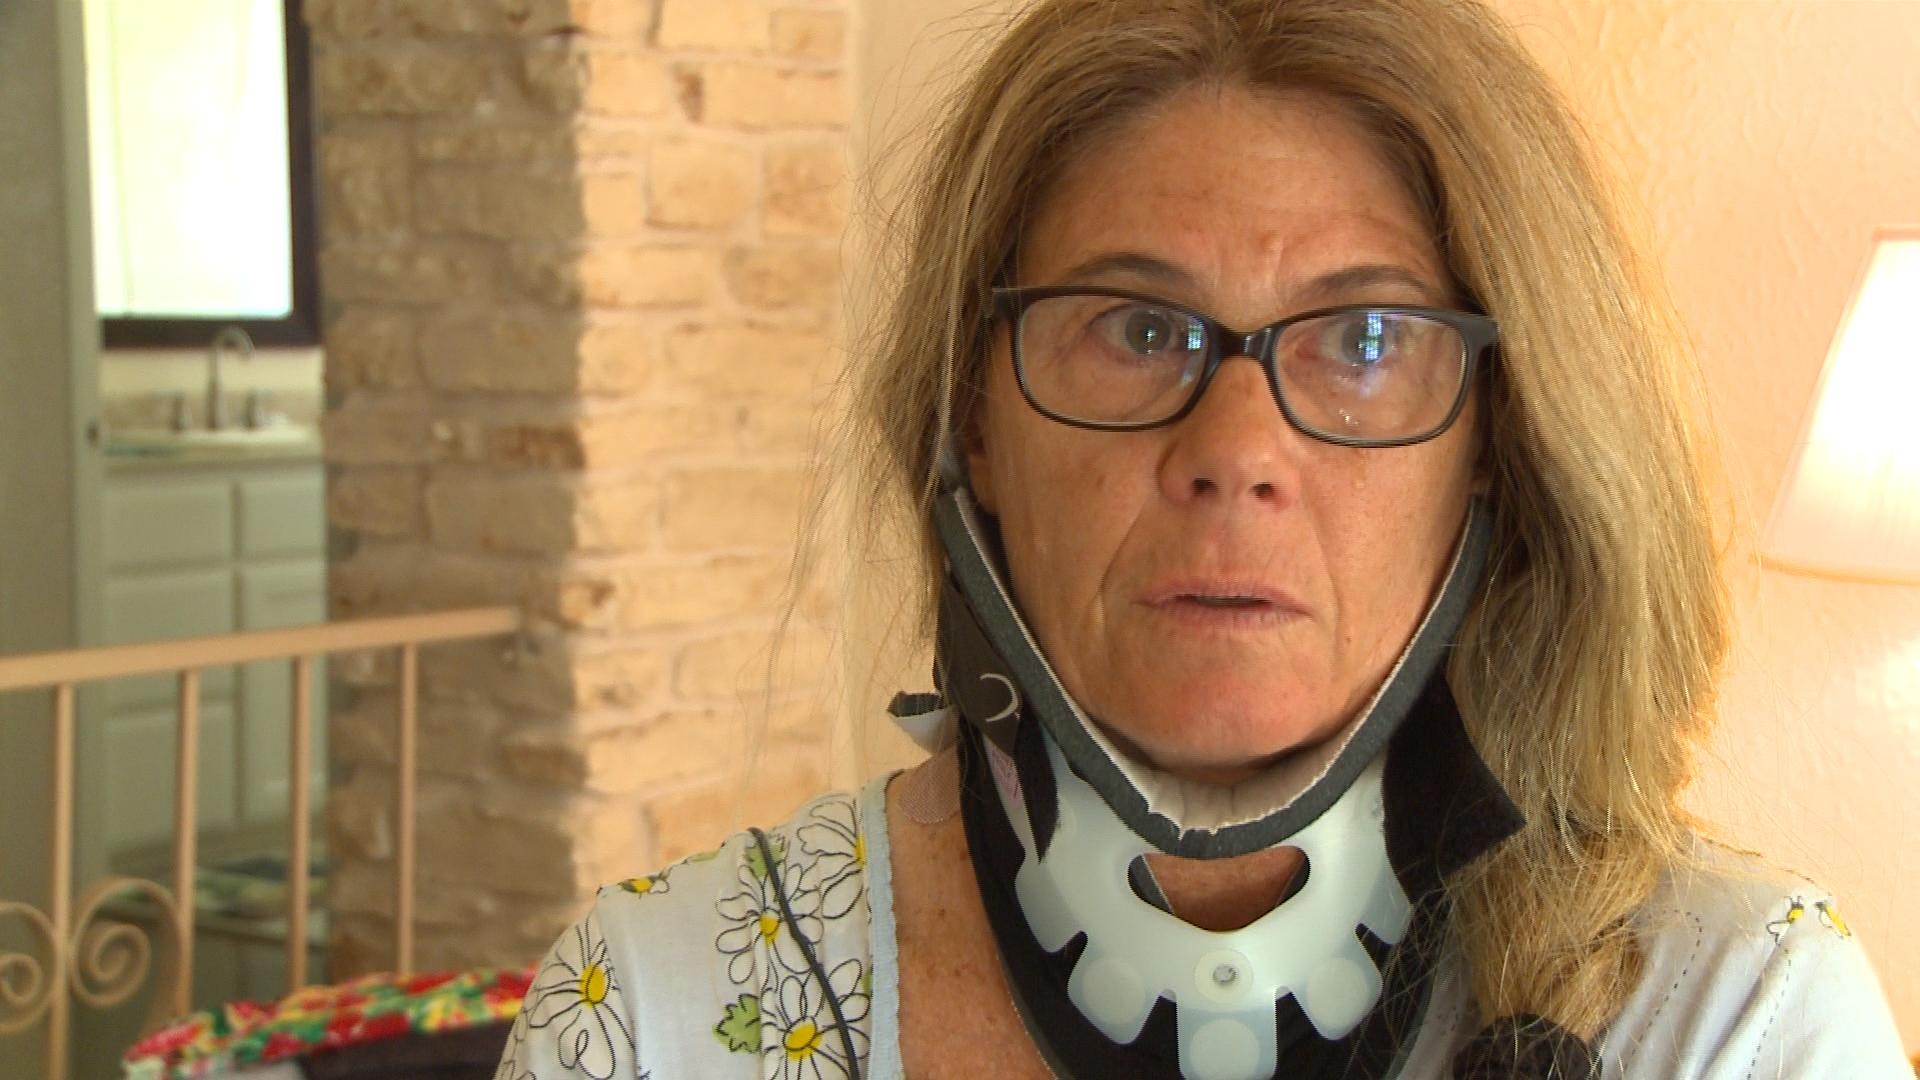 Wendy Meyer now has limited mobility after she was hit by a driver while cycling. KXAN Photo/ Alyssa Goard.